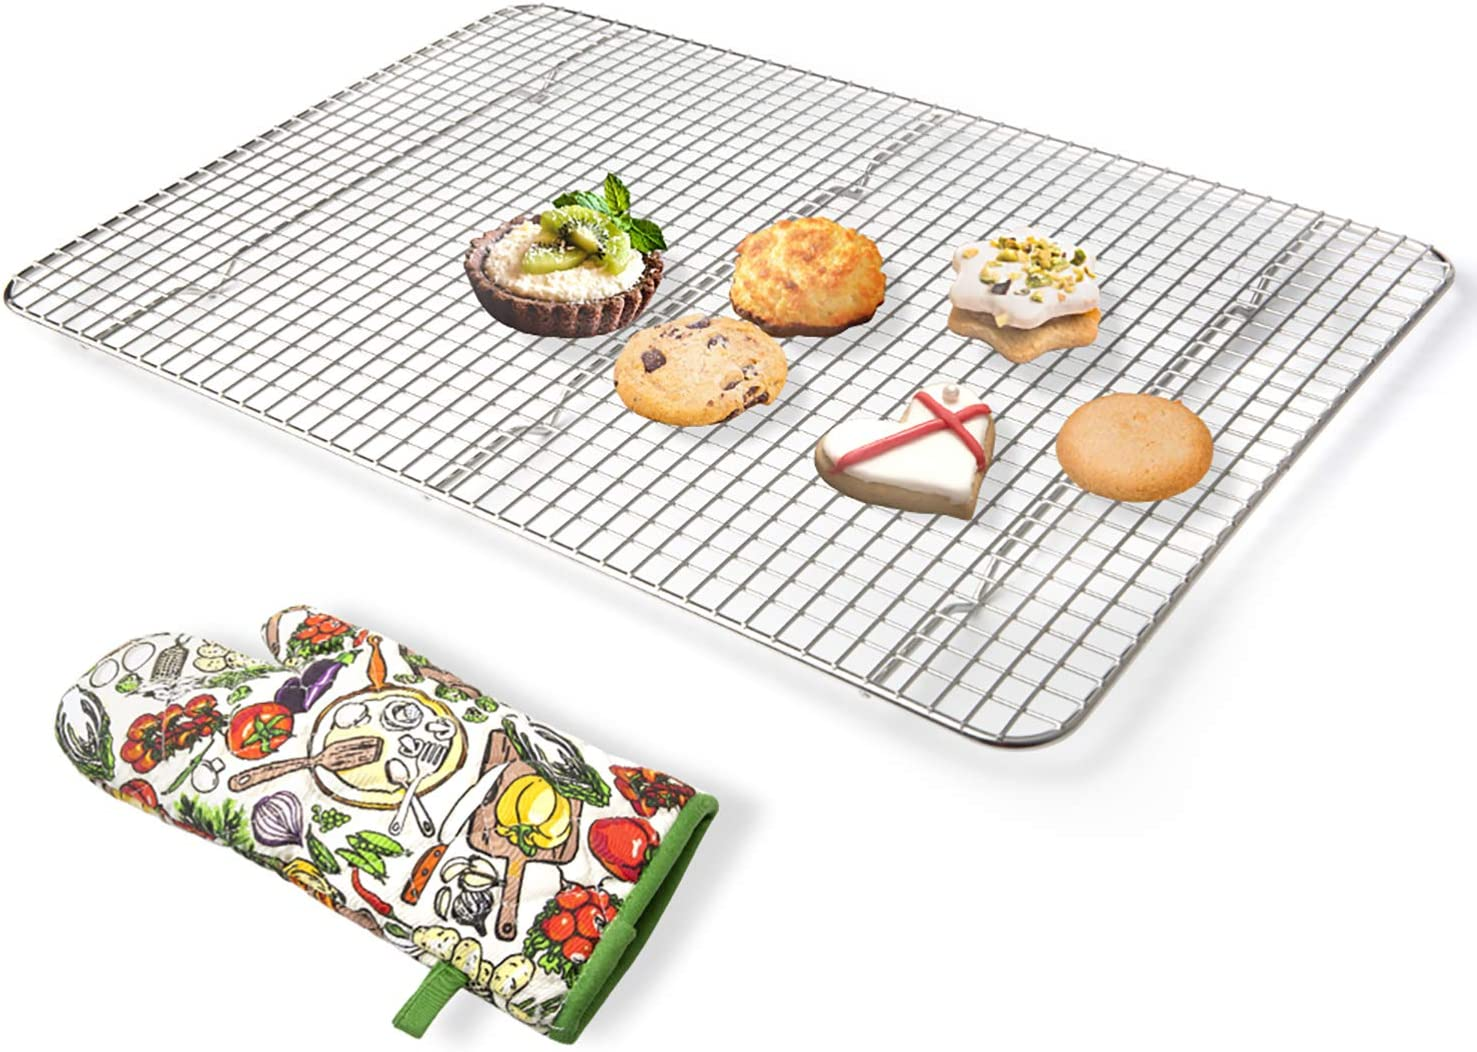 Secura Cooling Rack 100% 304 Stainless Steel Baking Rack, Wire Rack with Anti-scald Gloves for Baking, Cooking, Drying, Grilling, 12 x 17 Inches (Oven Safe & Dishwasher Safe)